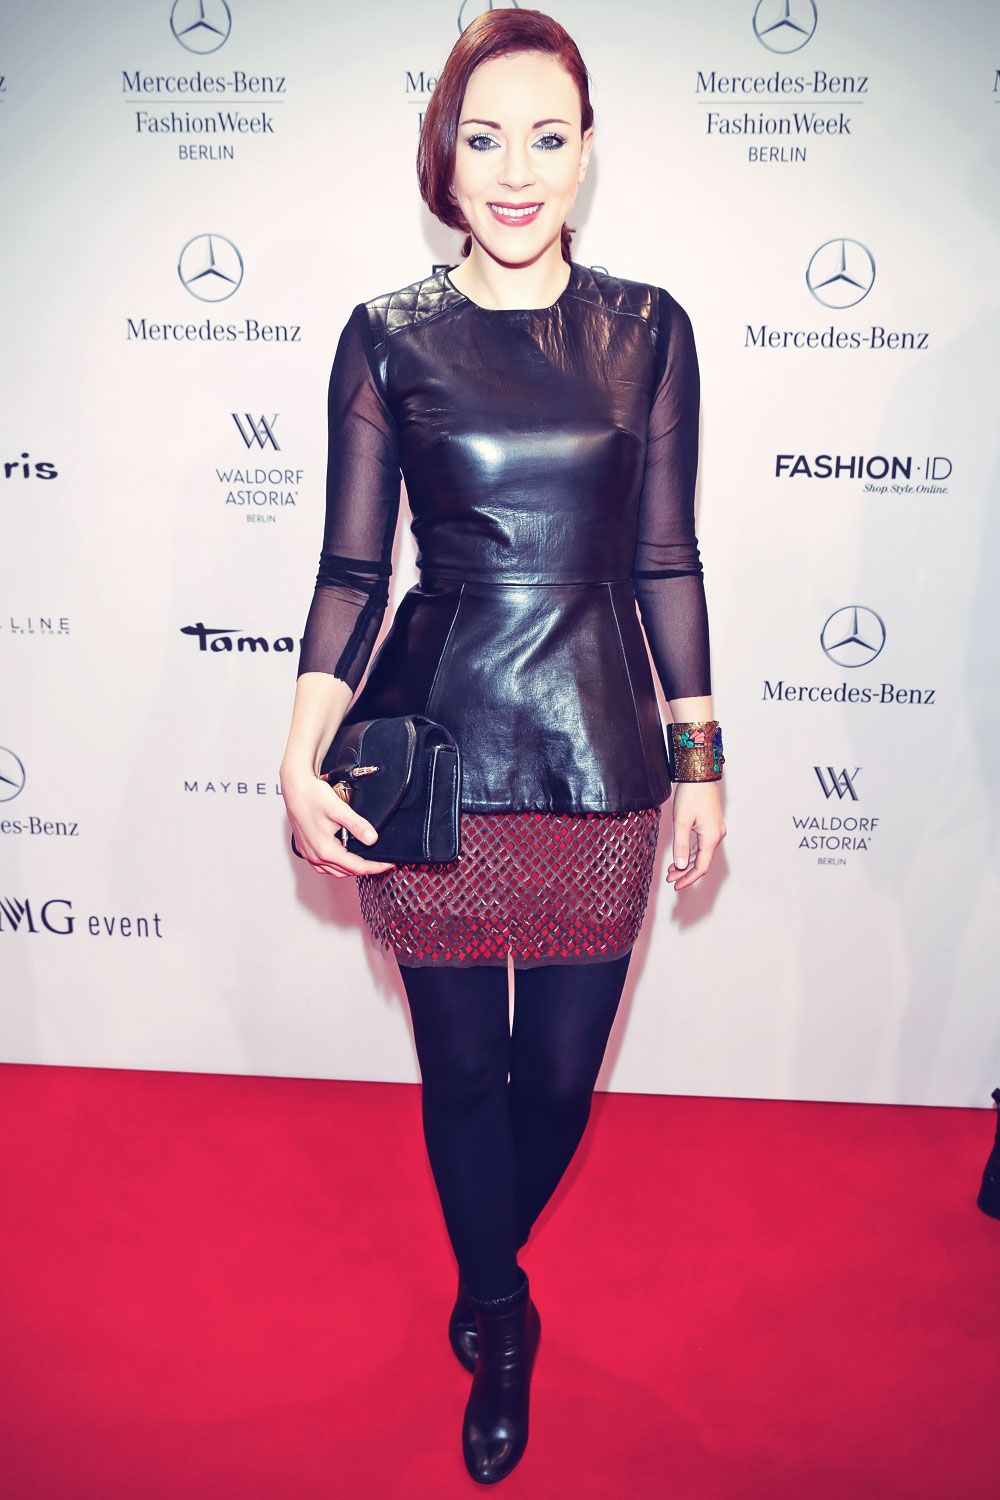 Jasmin Wagner attends Mercedes-Benz Fashion Week